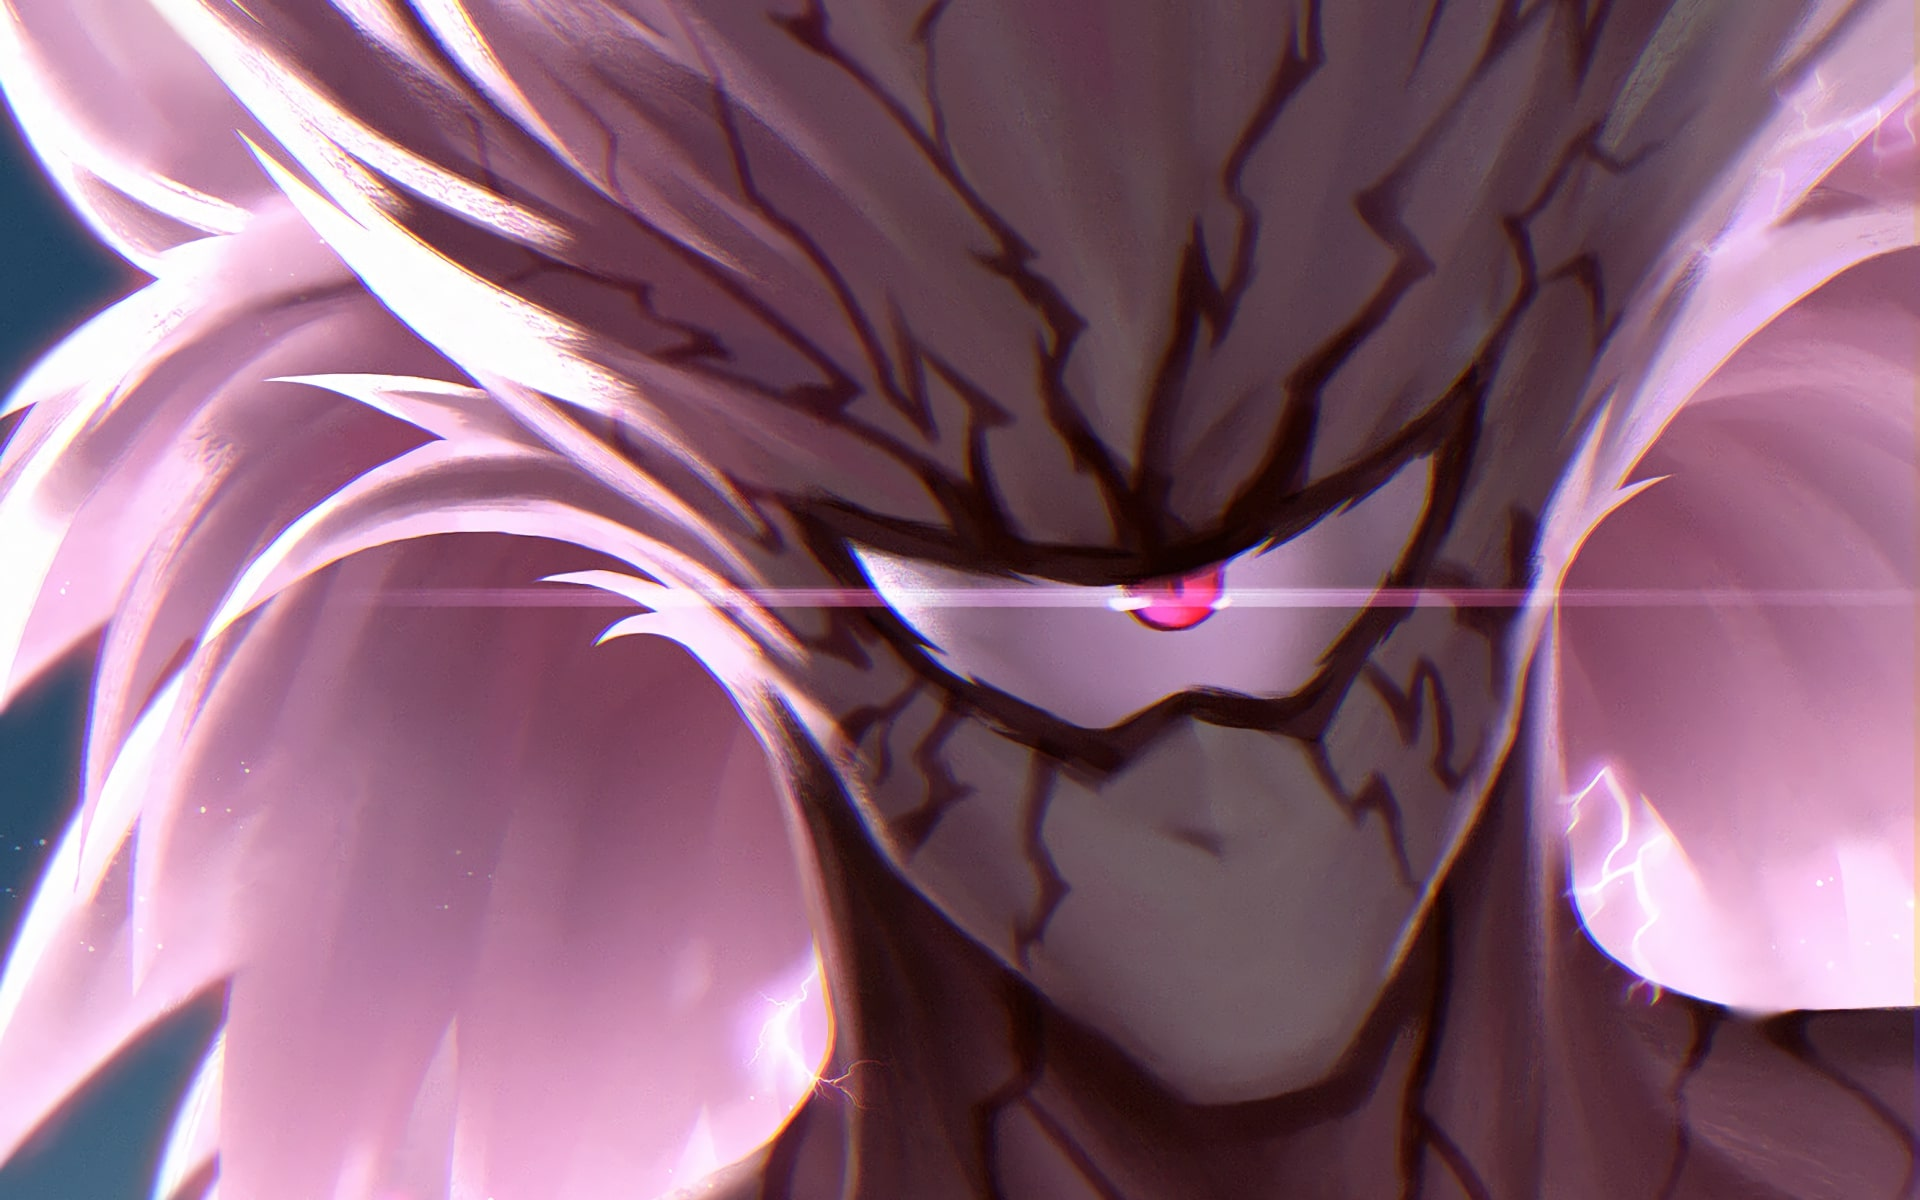 Wallpaper Of Anime Boros One Punch Man Background Hd Image